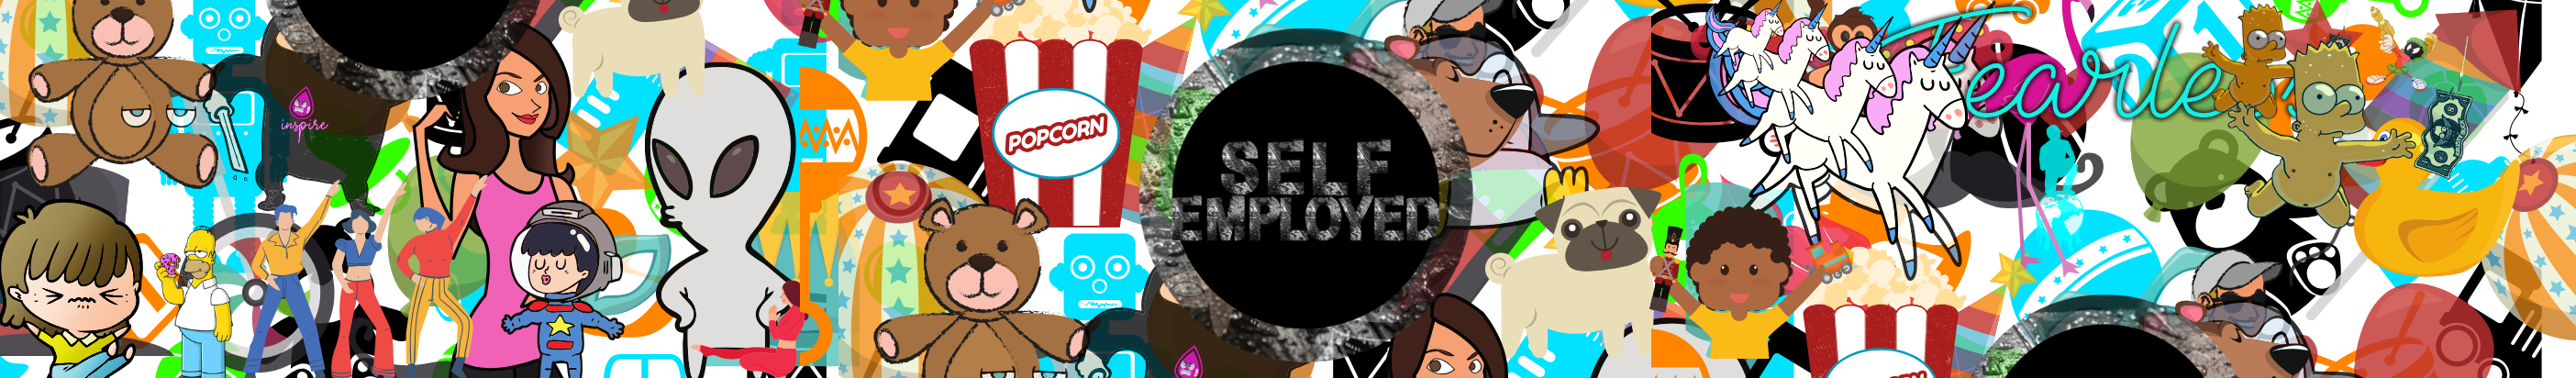 self employed banner